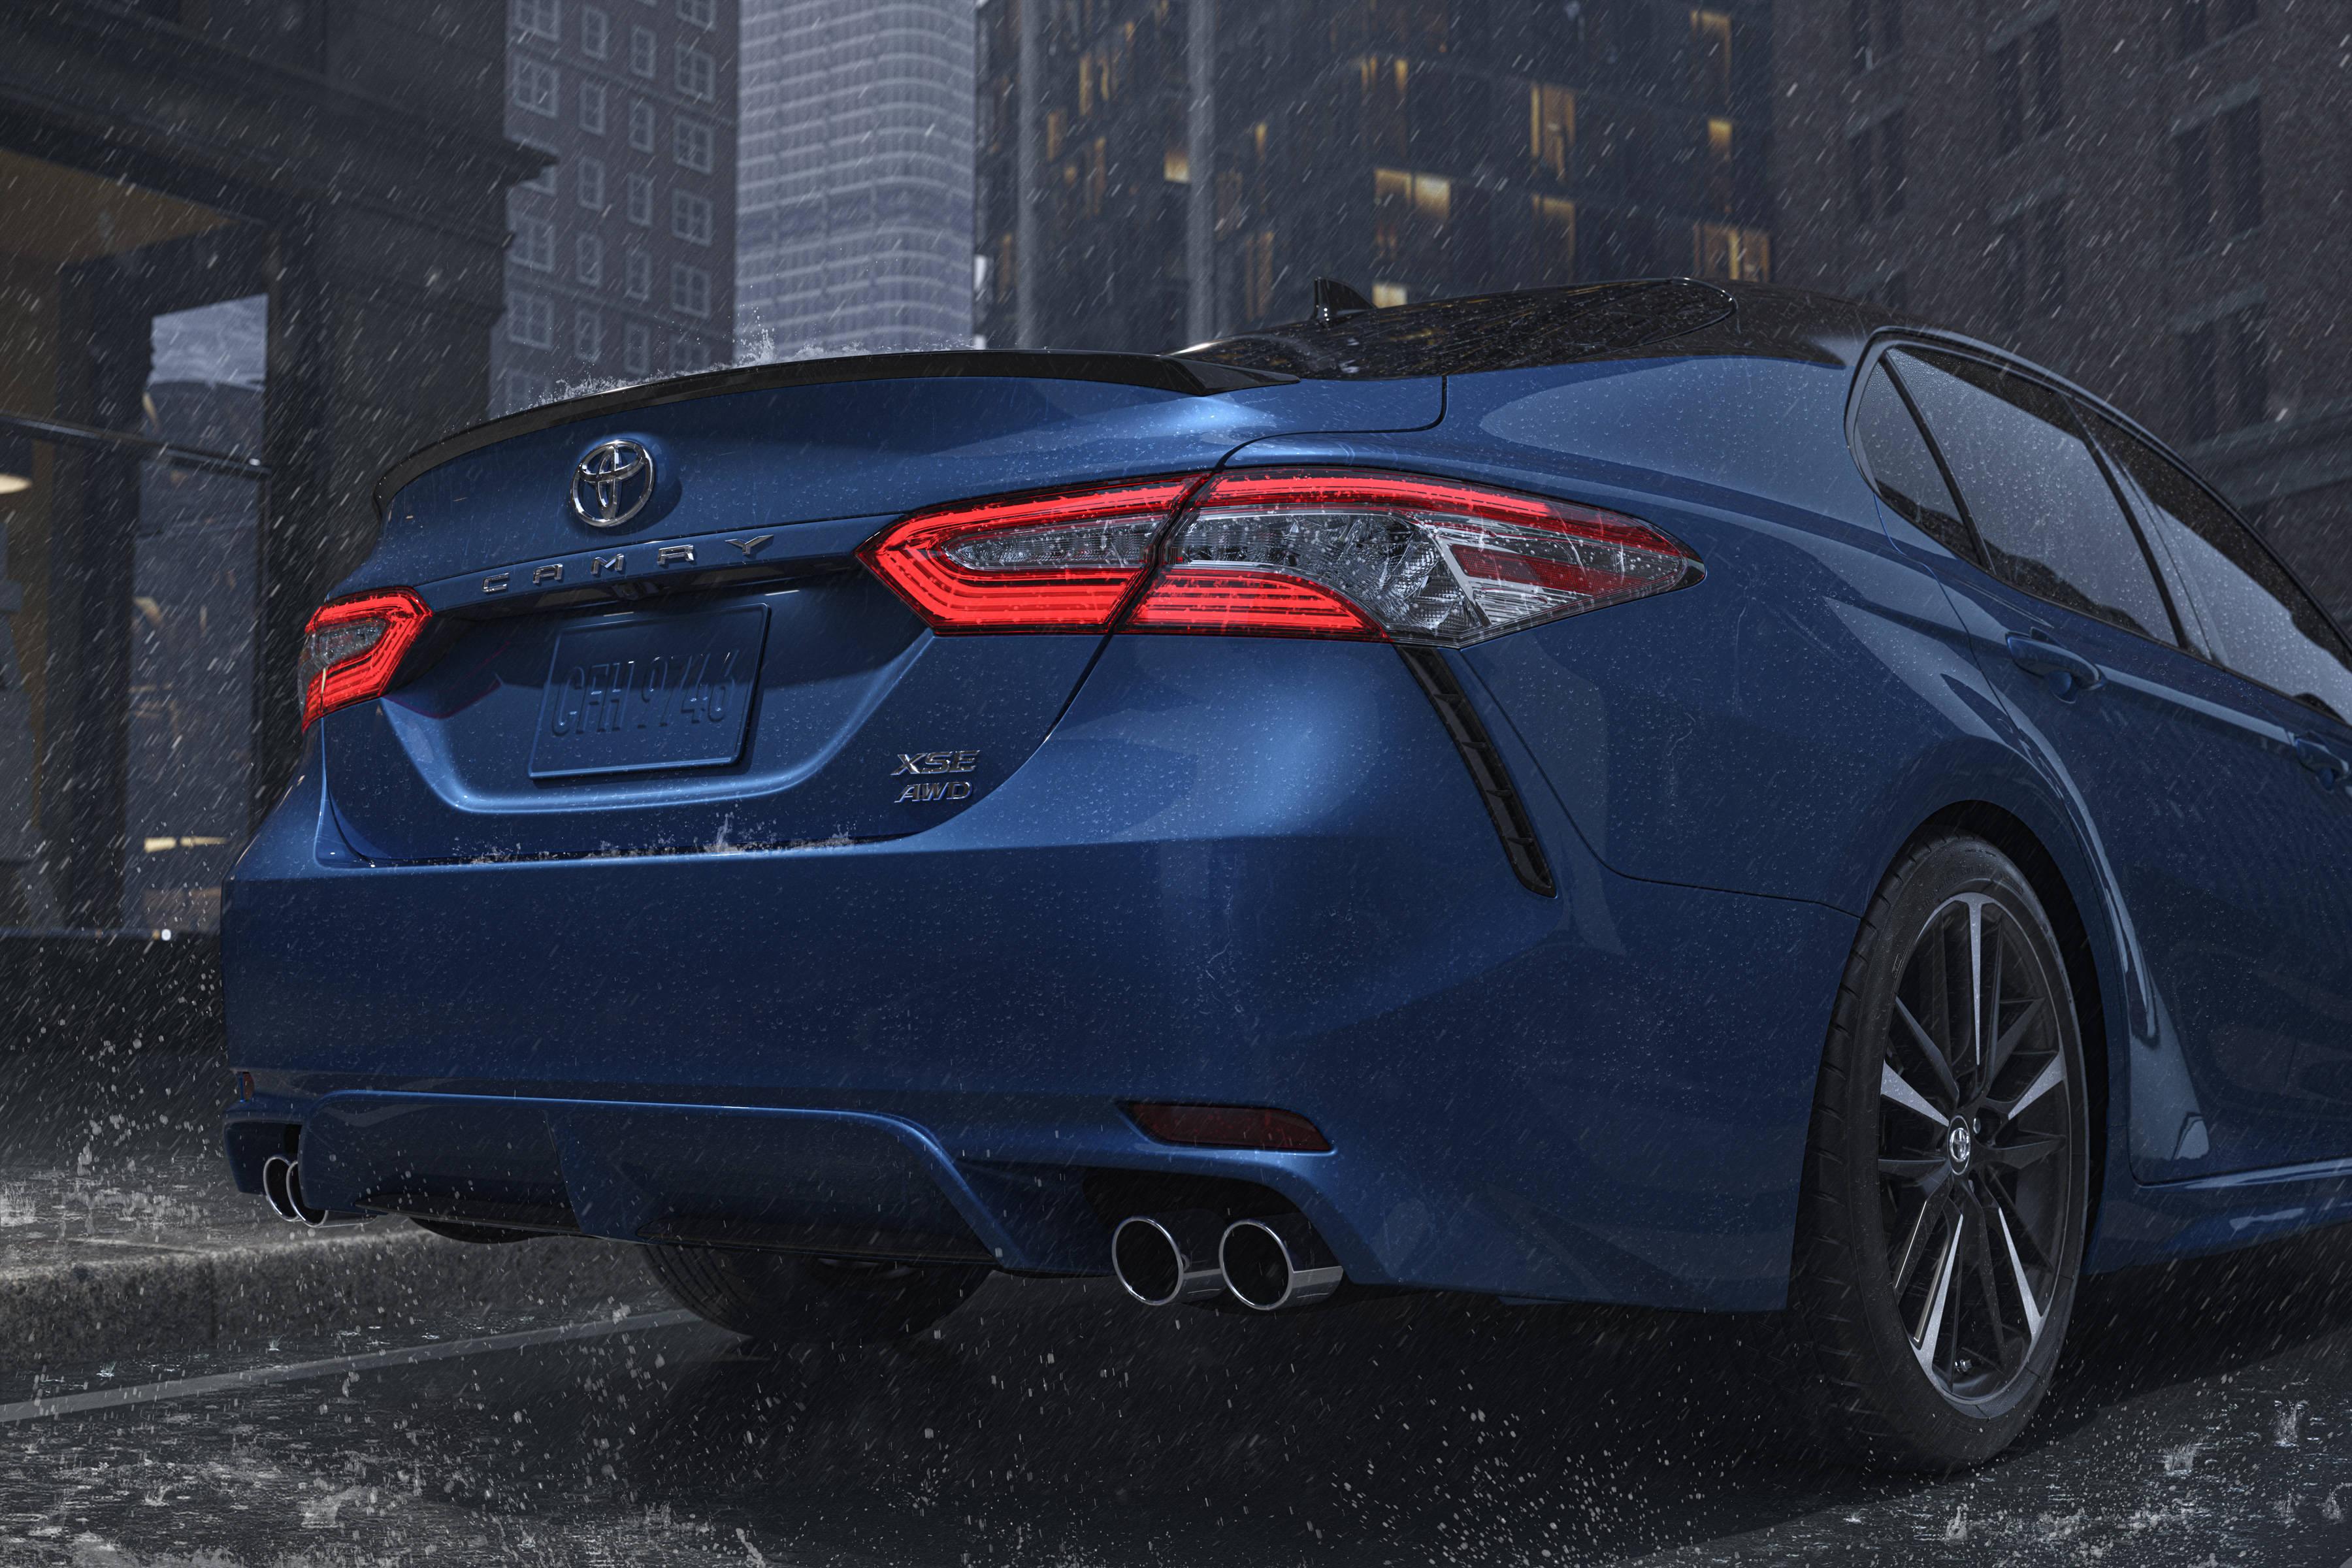 Get A Grip Toyota Introduces New Camry And Avalon All Wheel Drive Sedans Toyota Usa Newsroom